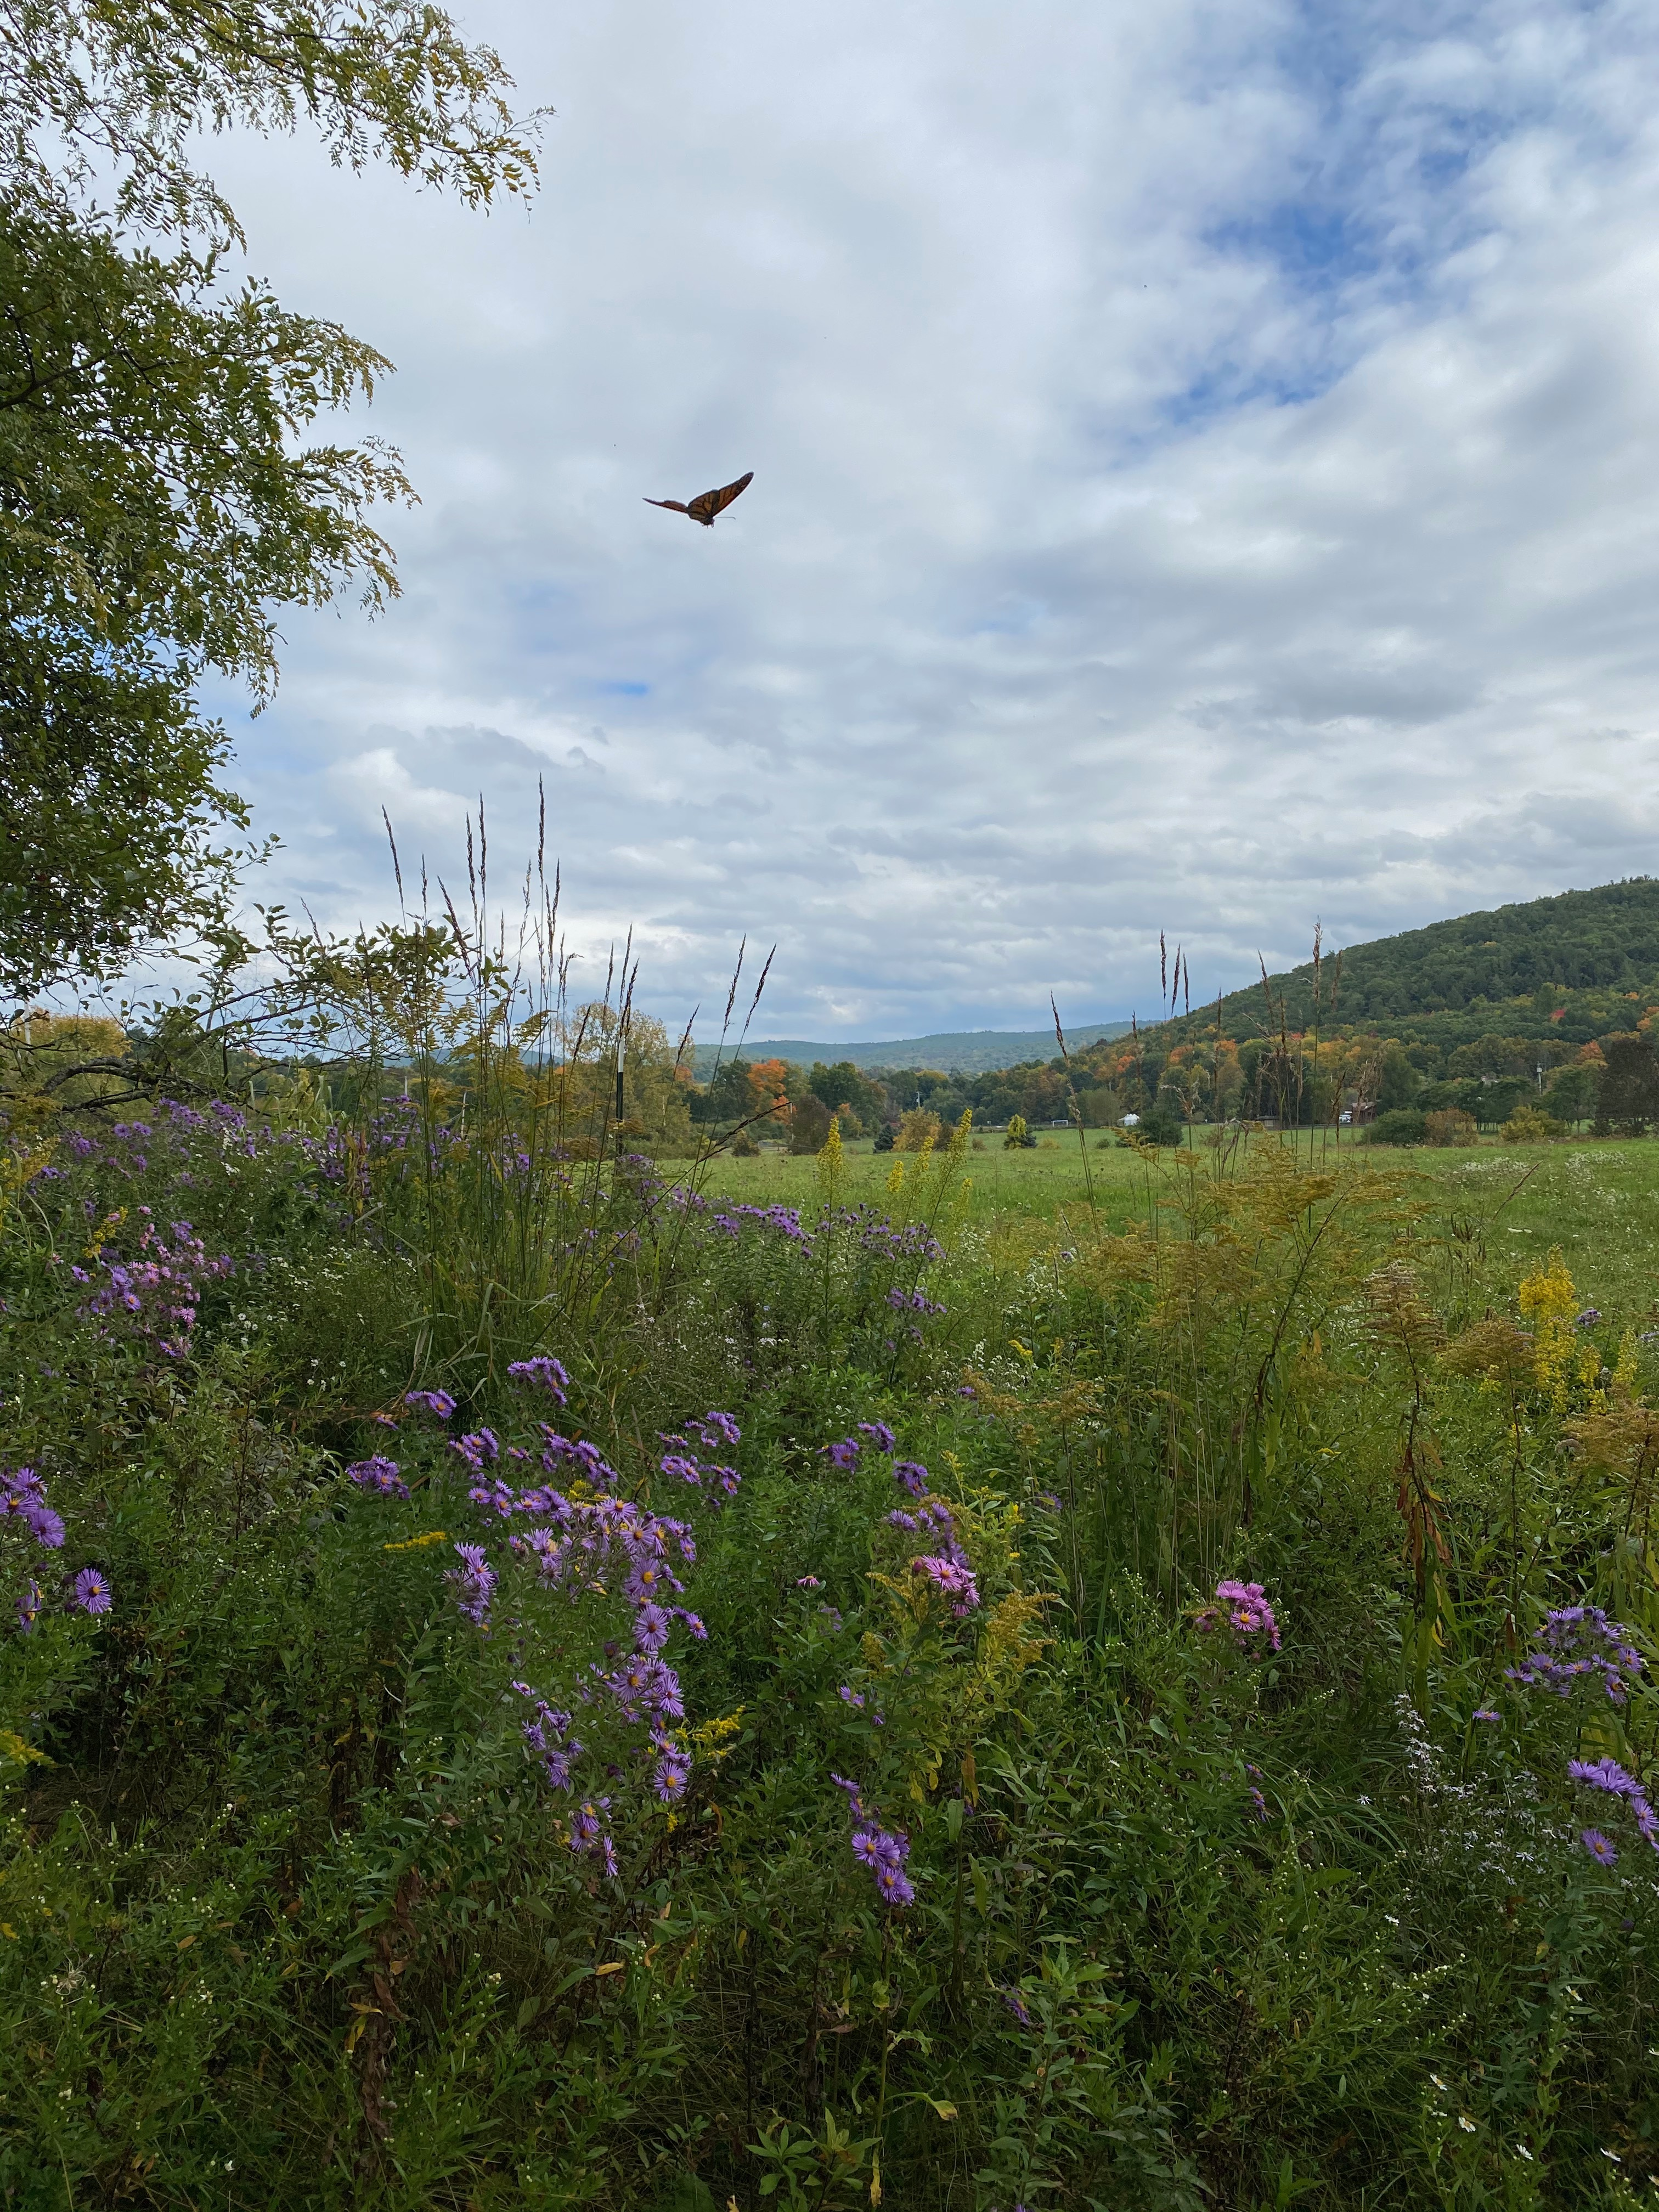 Monarch flying over purple blooming New England Asters in the meadow